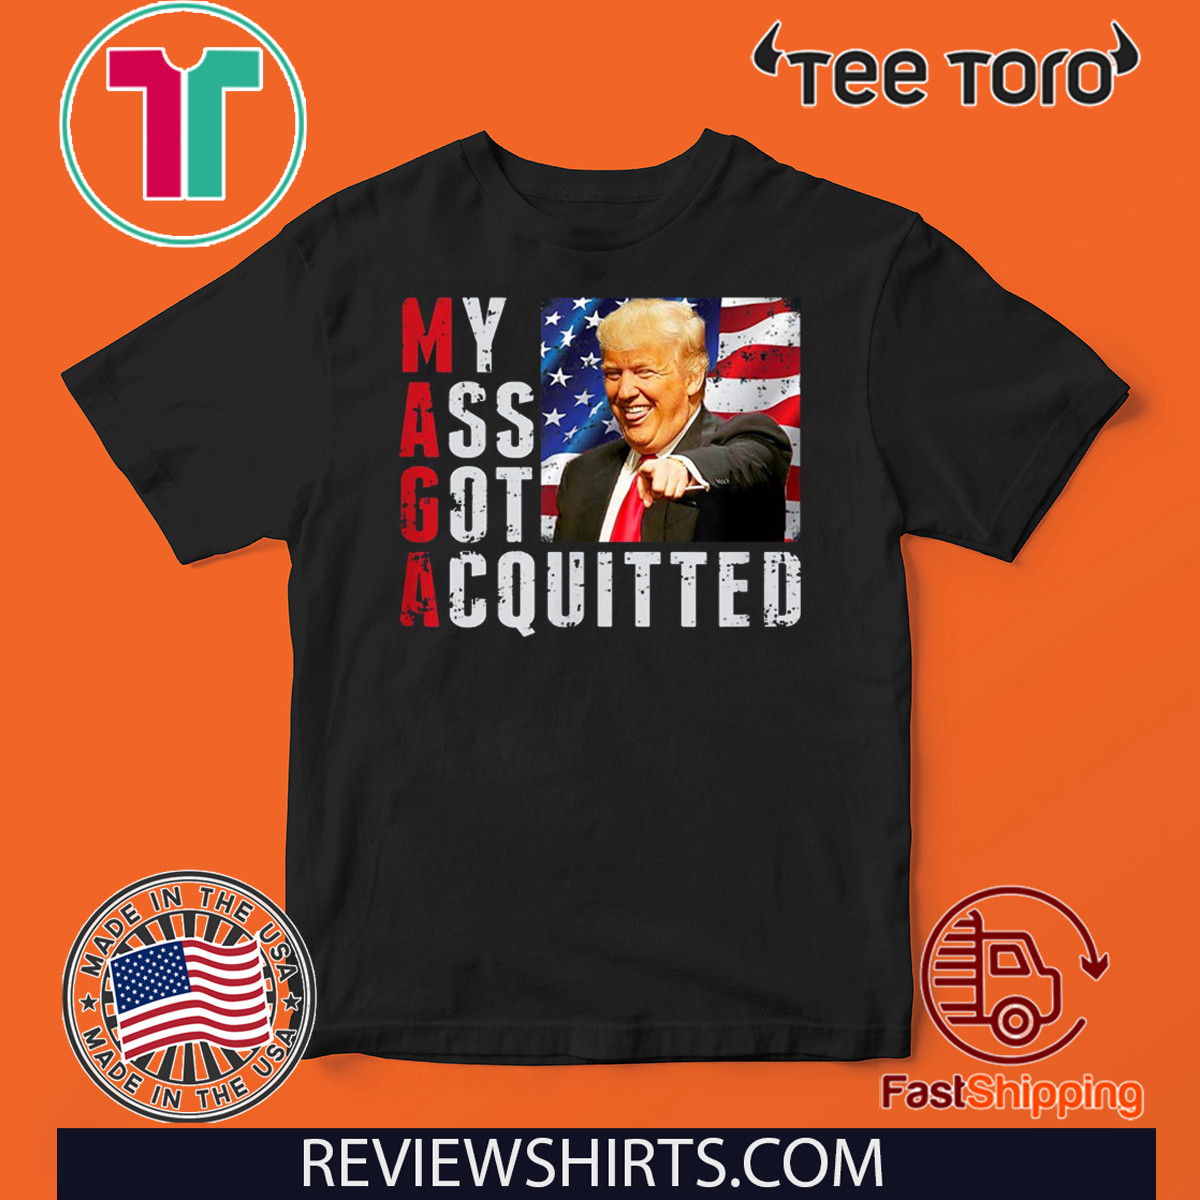 President Donald Trump Acquitted Funny My Ass Got Acquitted Apparel Shirt